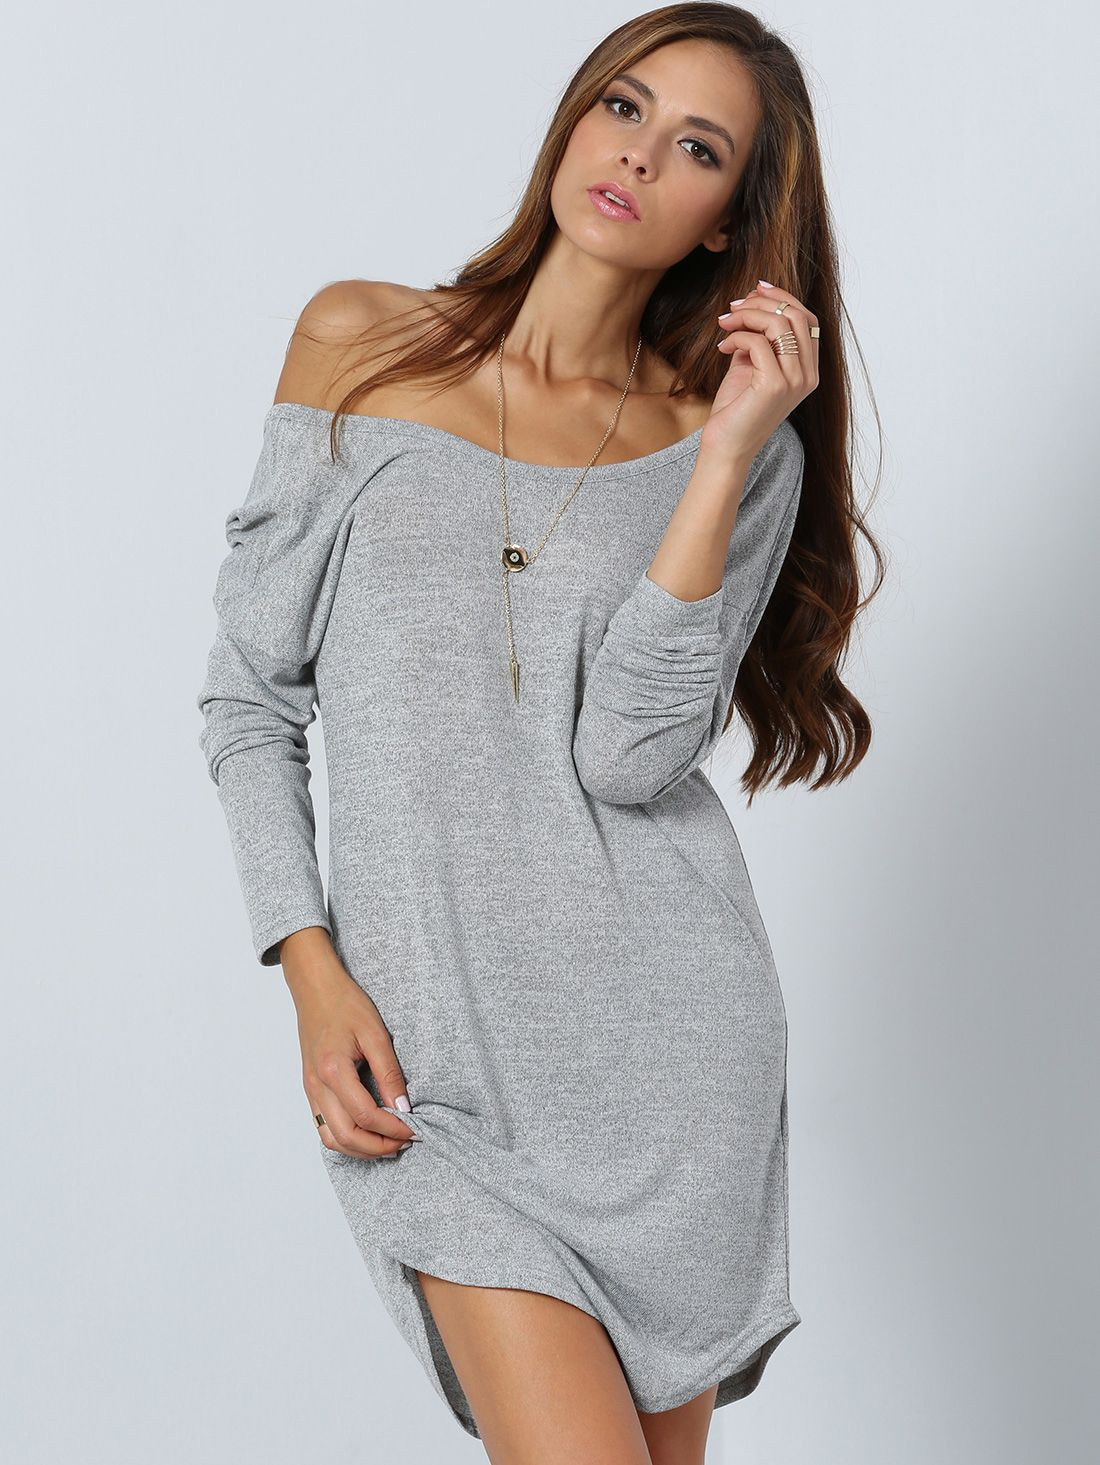 740adfd5d6 Shop Grey Long Sleeve V Back Dress online. SheIn offers Grey Long Sleeve V  Back Dress & more to fit your fashionable needs.